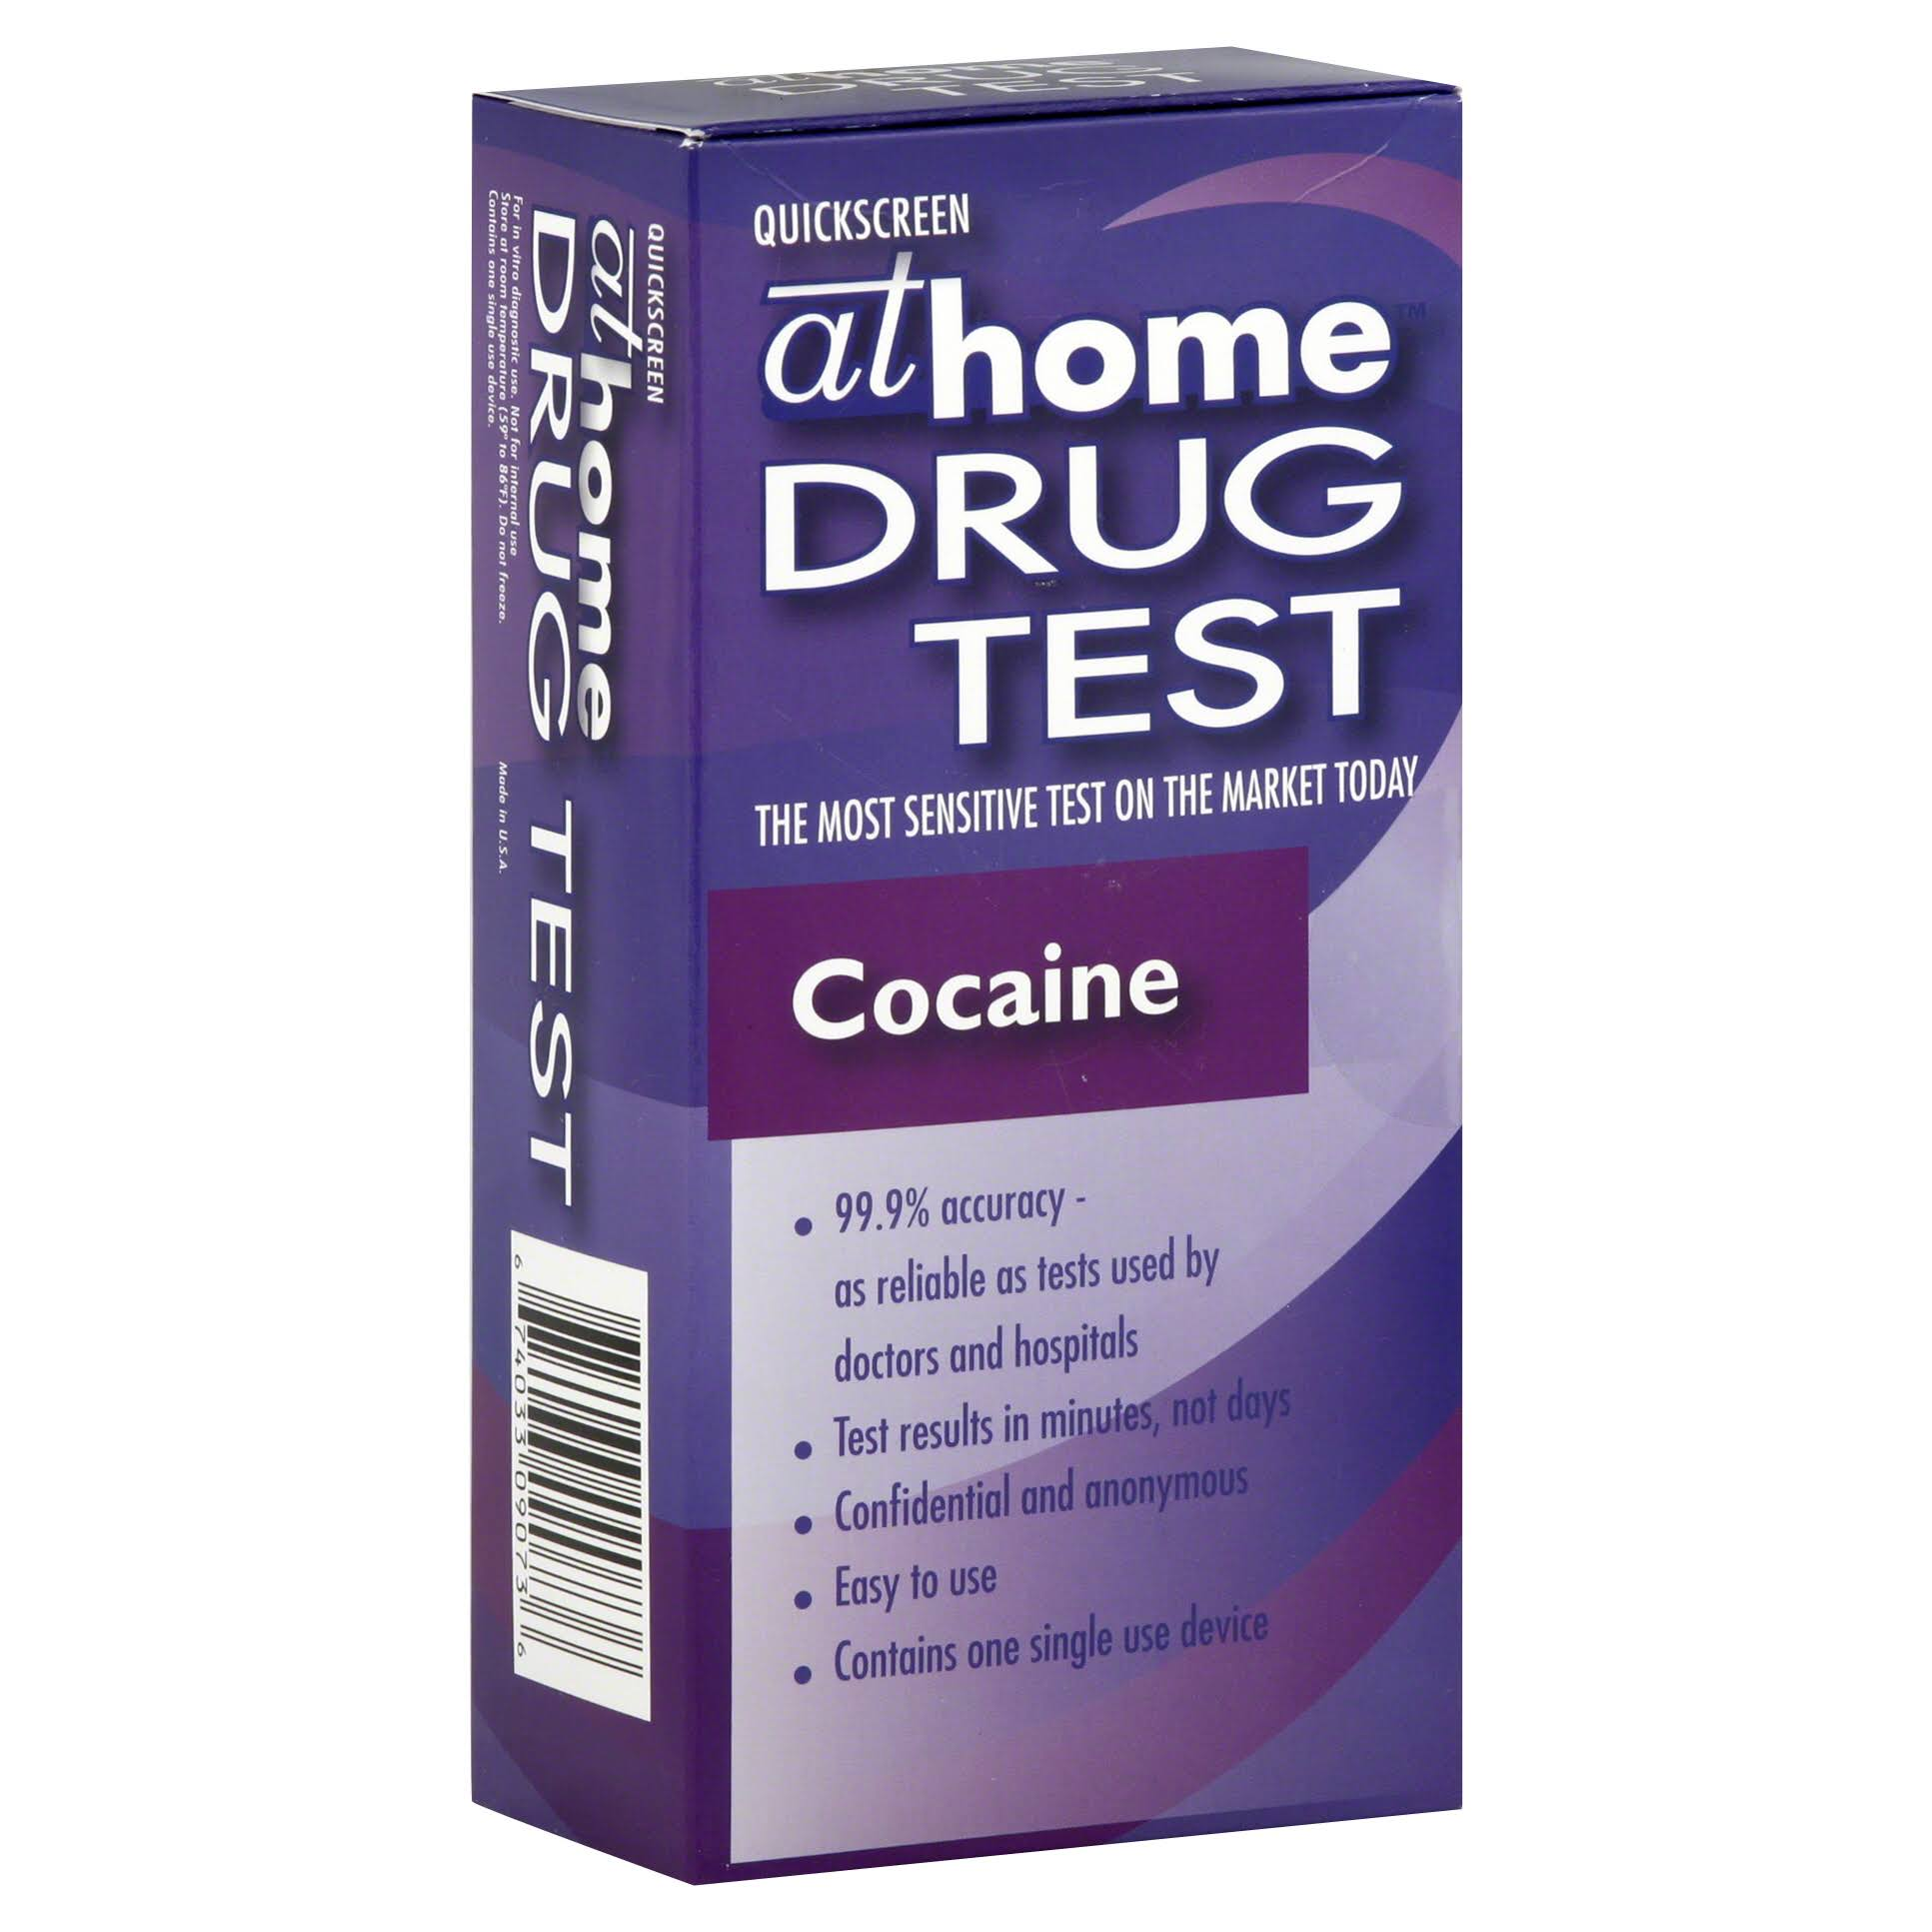 At Home Drug Test - Cocaine